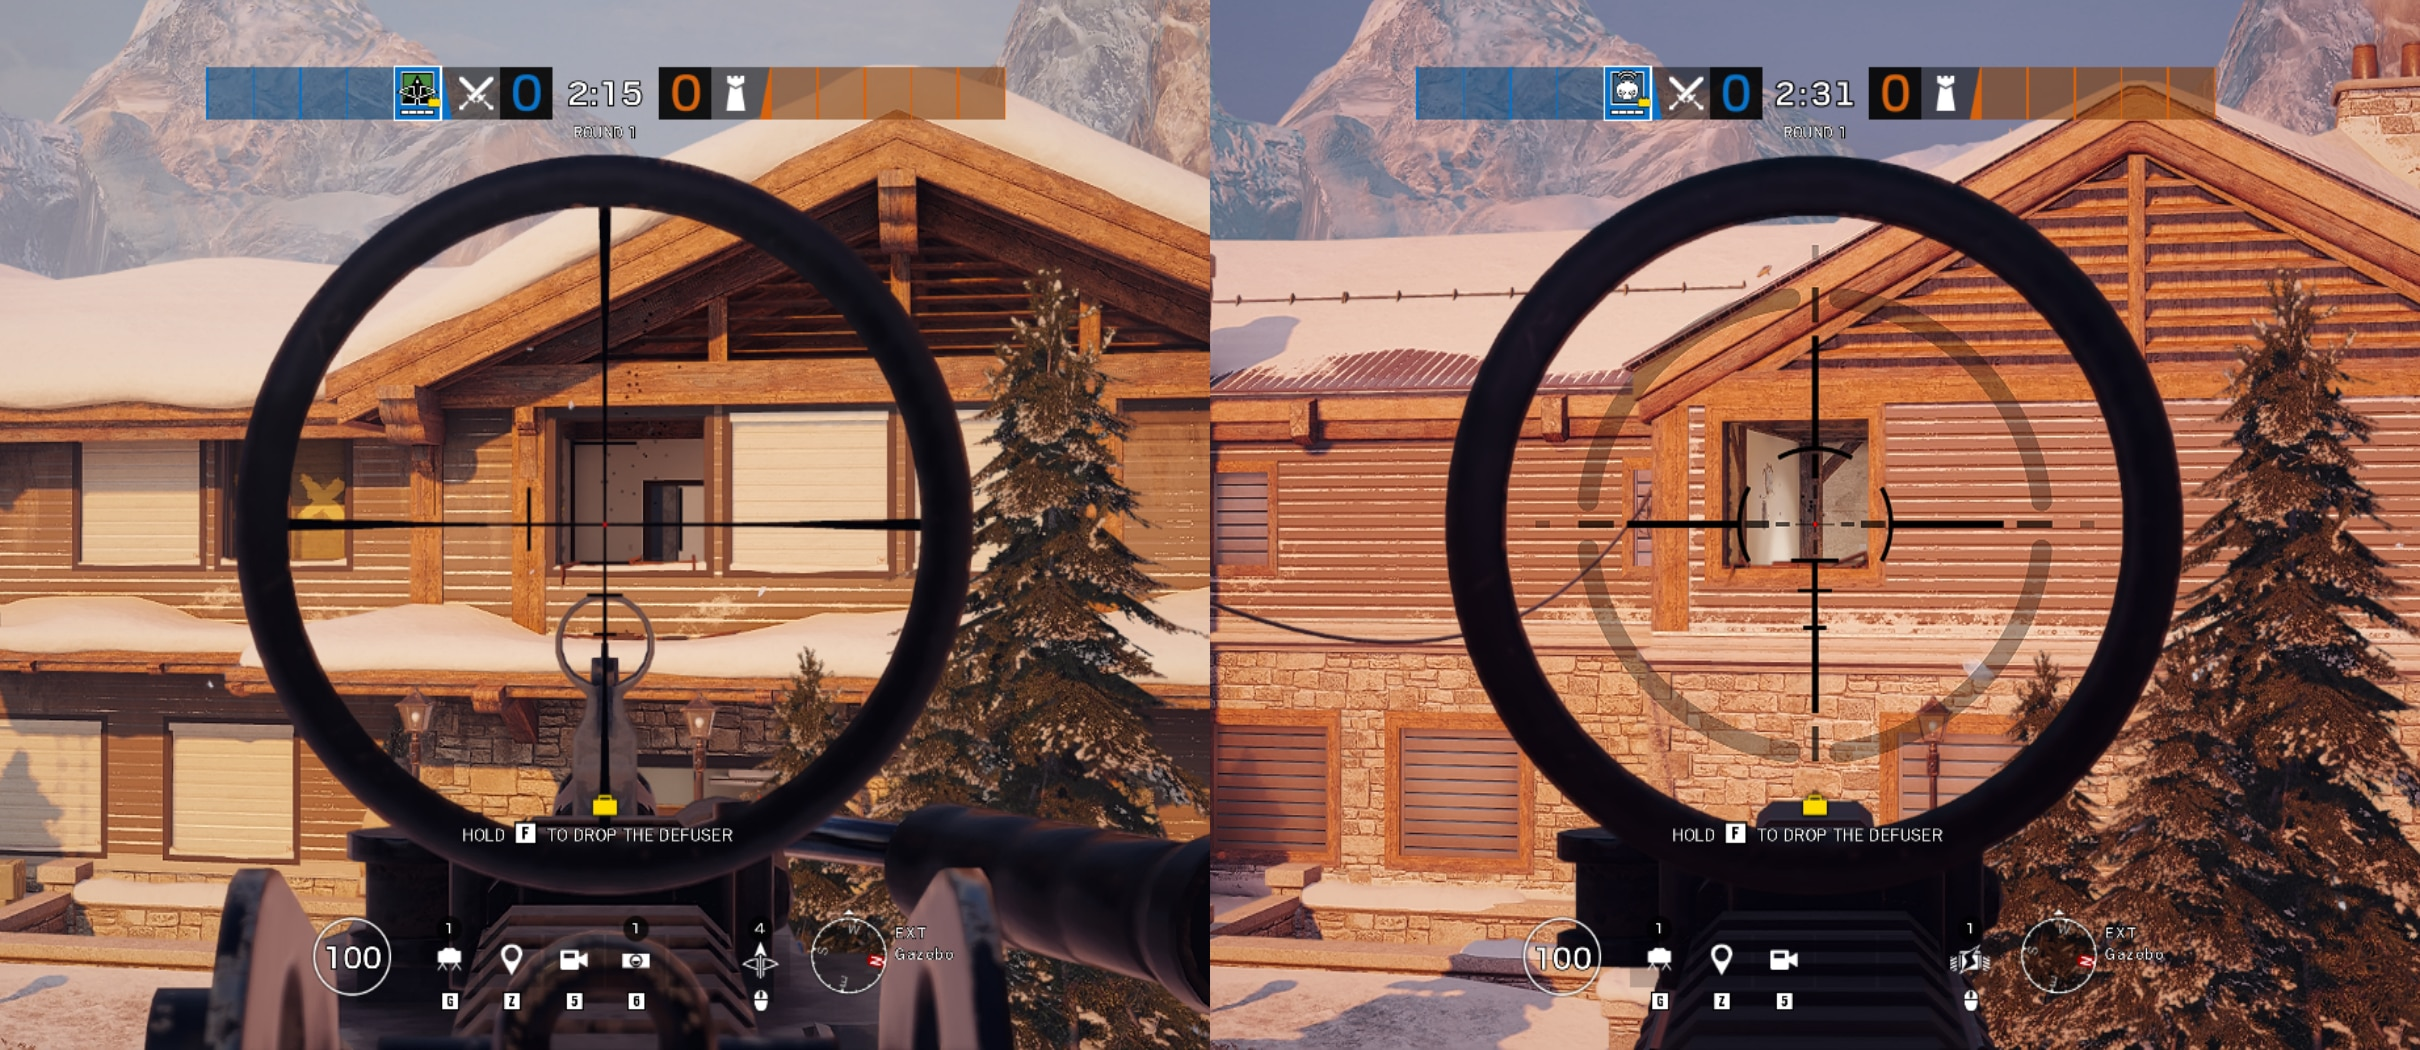 [R6S] Y5S3 Scope 3.0x Comparison